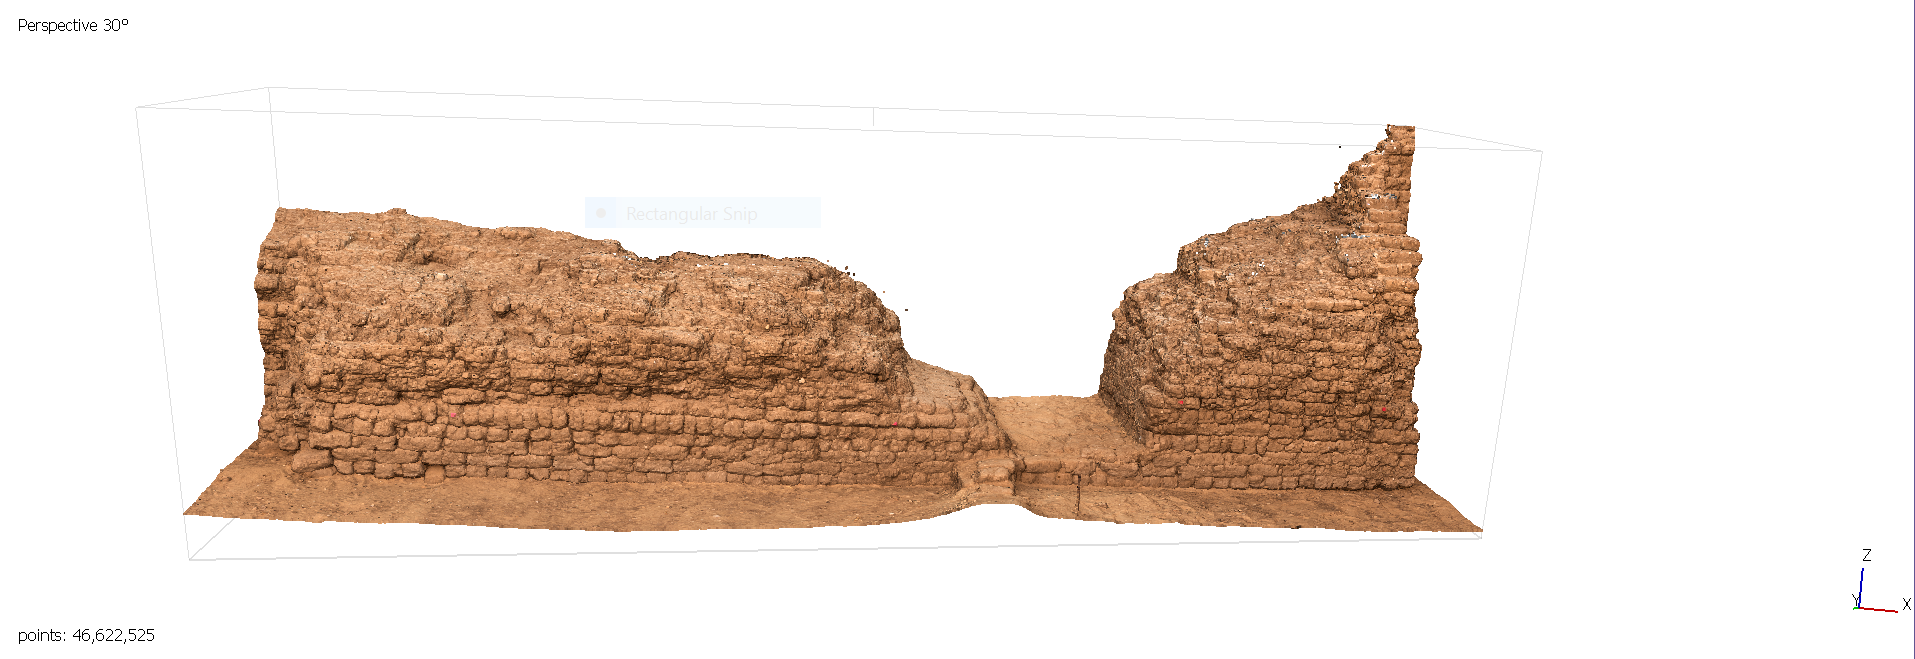 Fig. 16. Architectural modeling of the east corner gateway of the Shunet el-Zebib — step three, dense cloud image. Photo: Blair Simmons / North Abydos Expedition © 2019